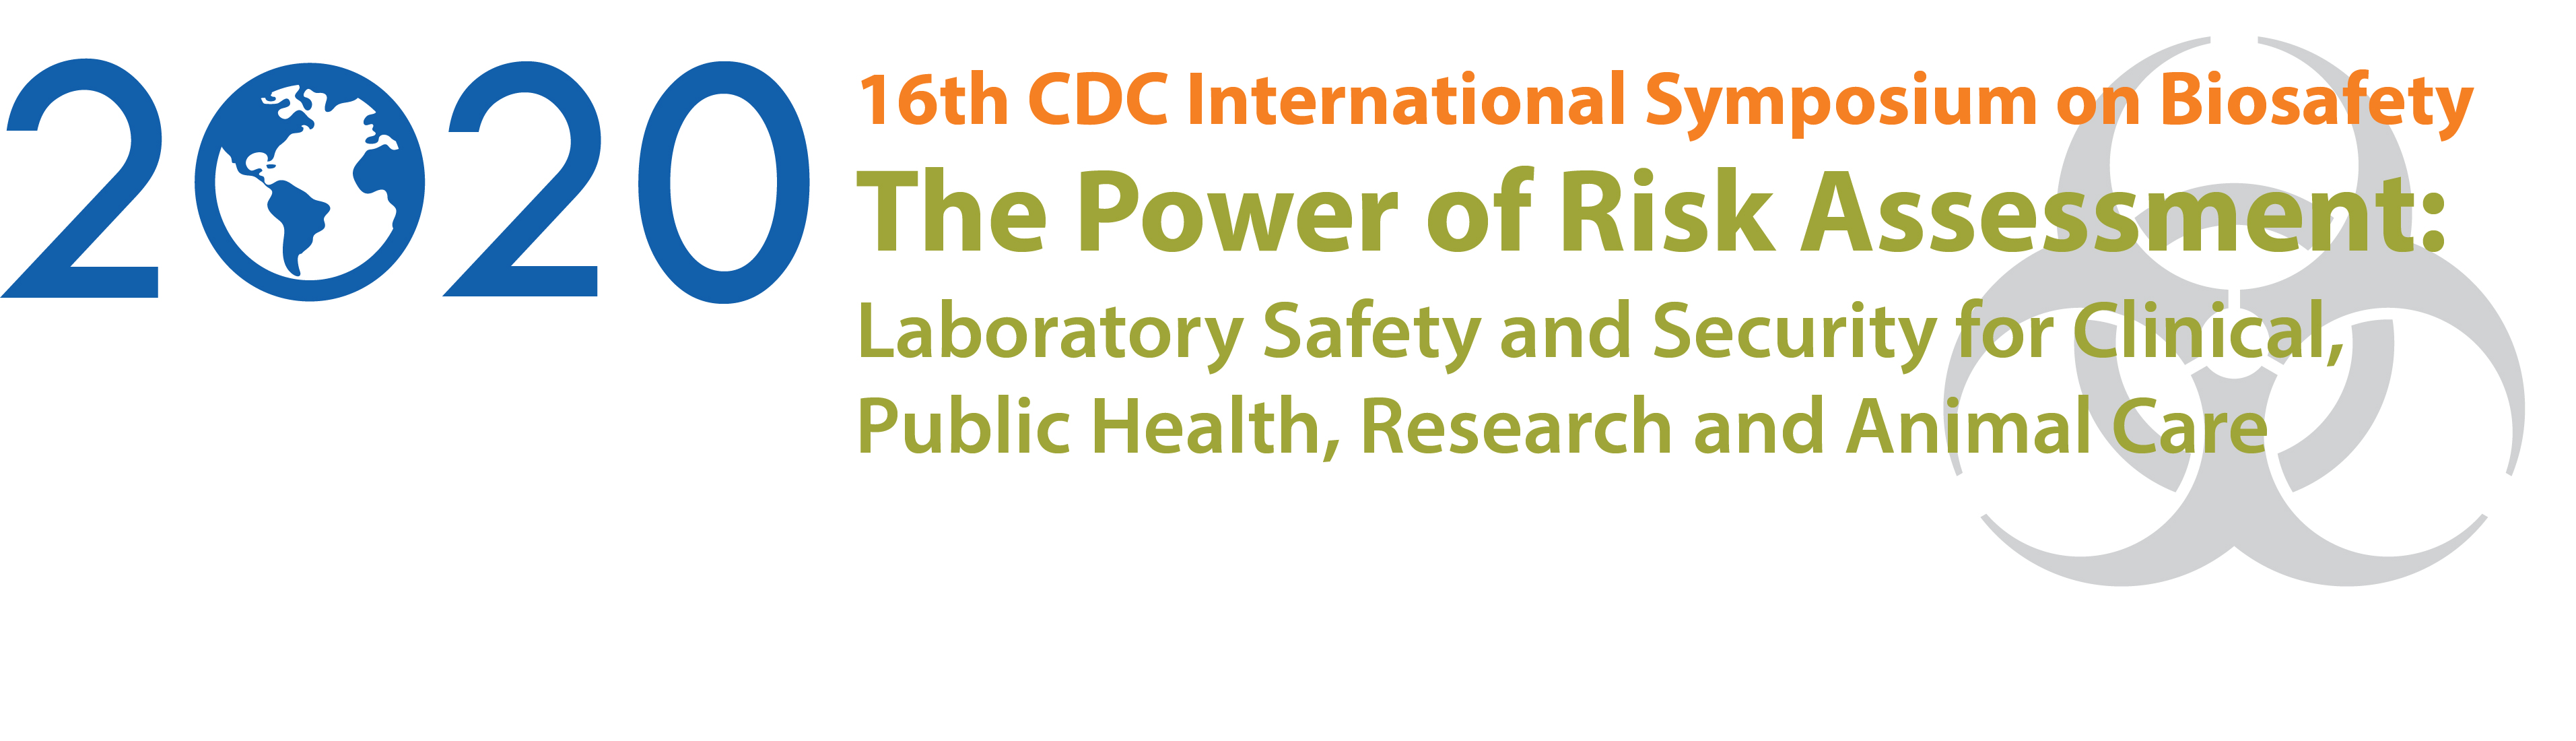 CDC International Biosafety Symposium - The Eagleson Institute